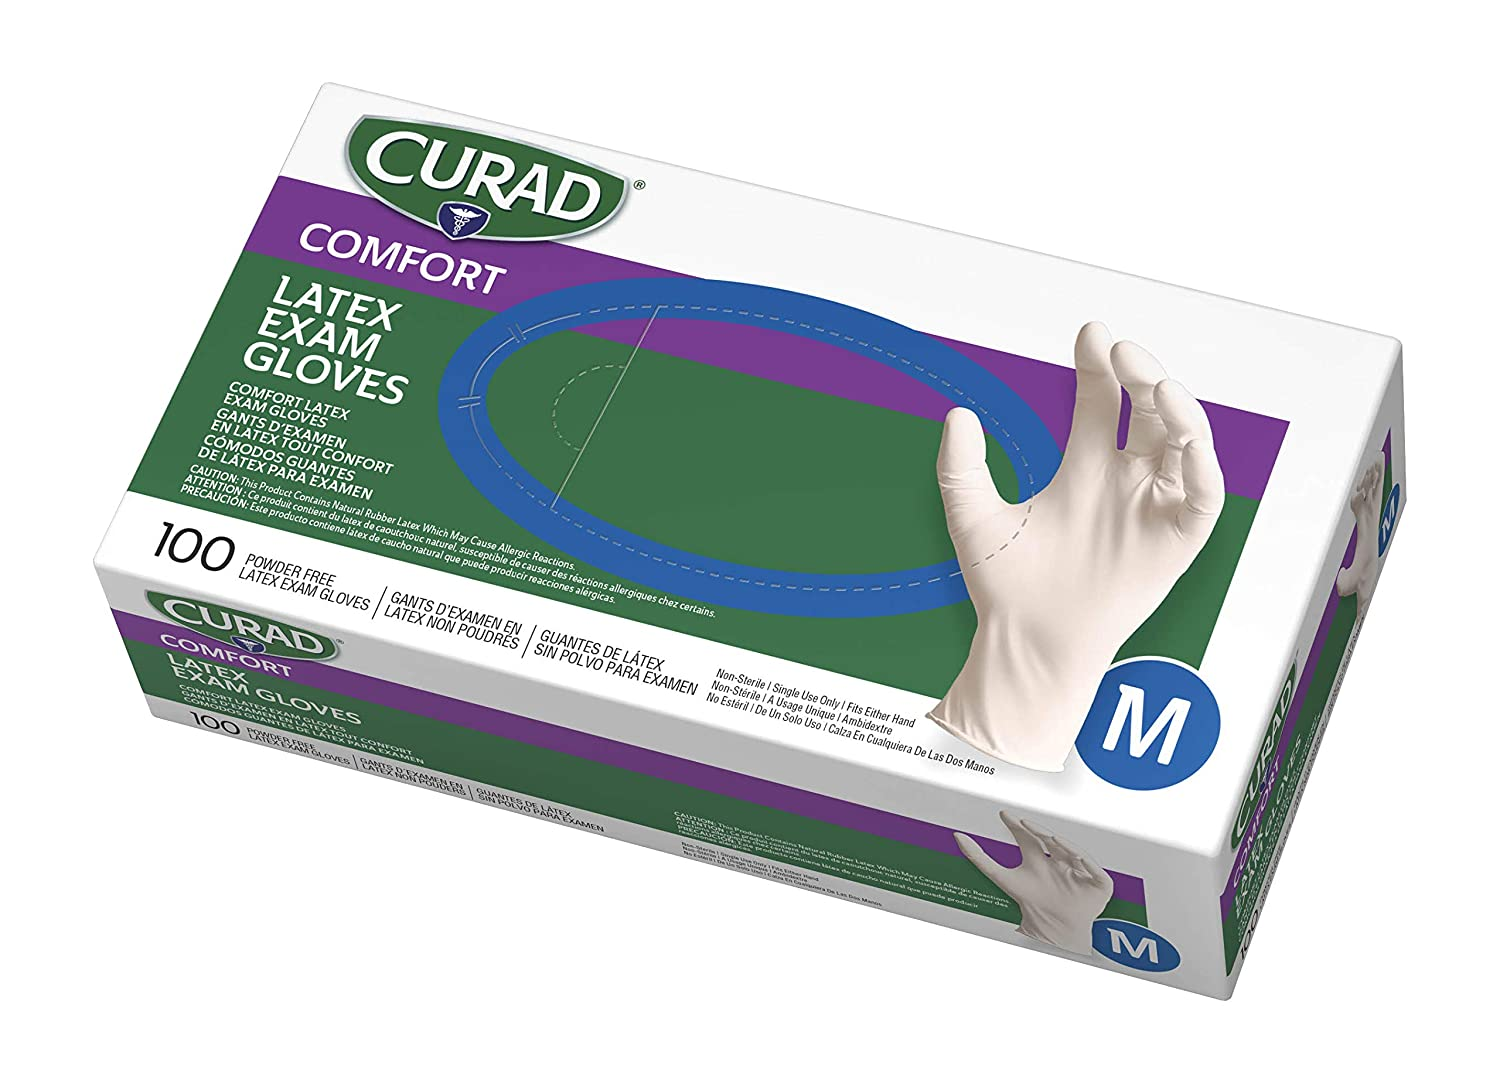 Curad Disposable Medical Latex Gloves, Powder Free Latex Gloves are Textured, Medium, 100 Count